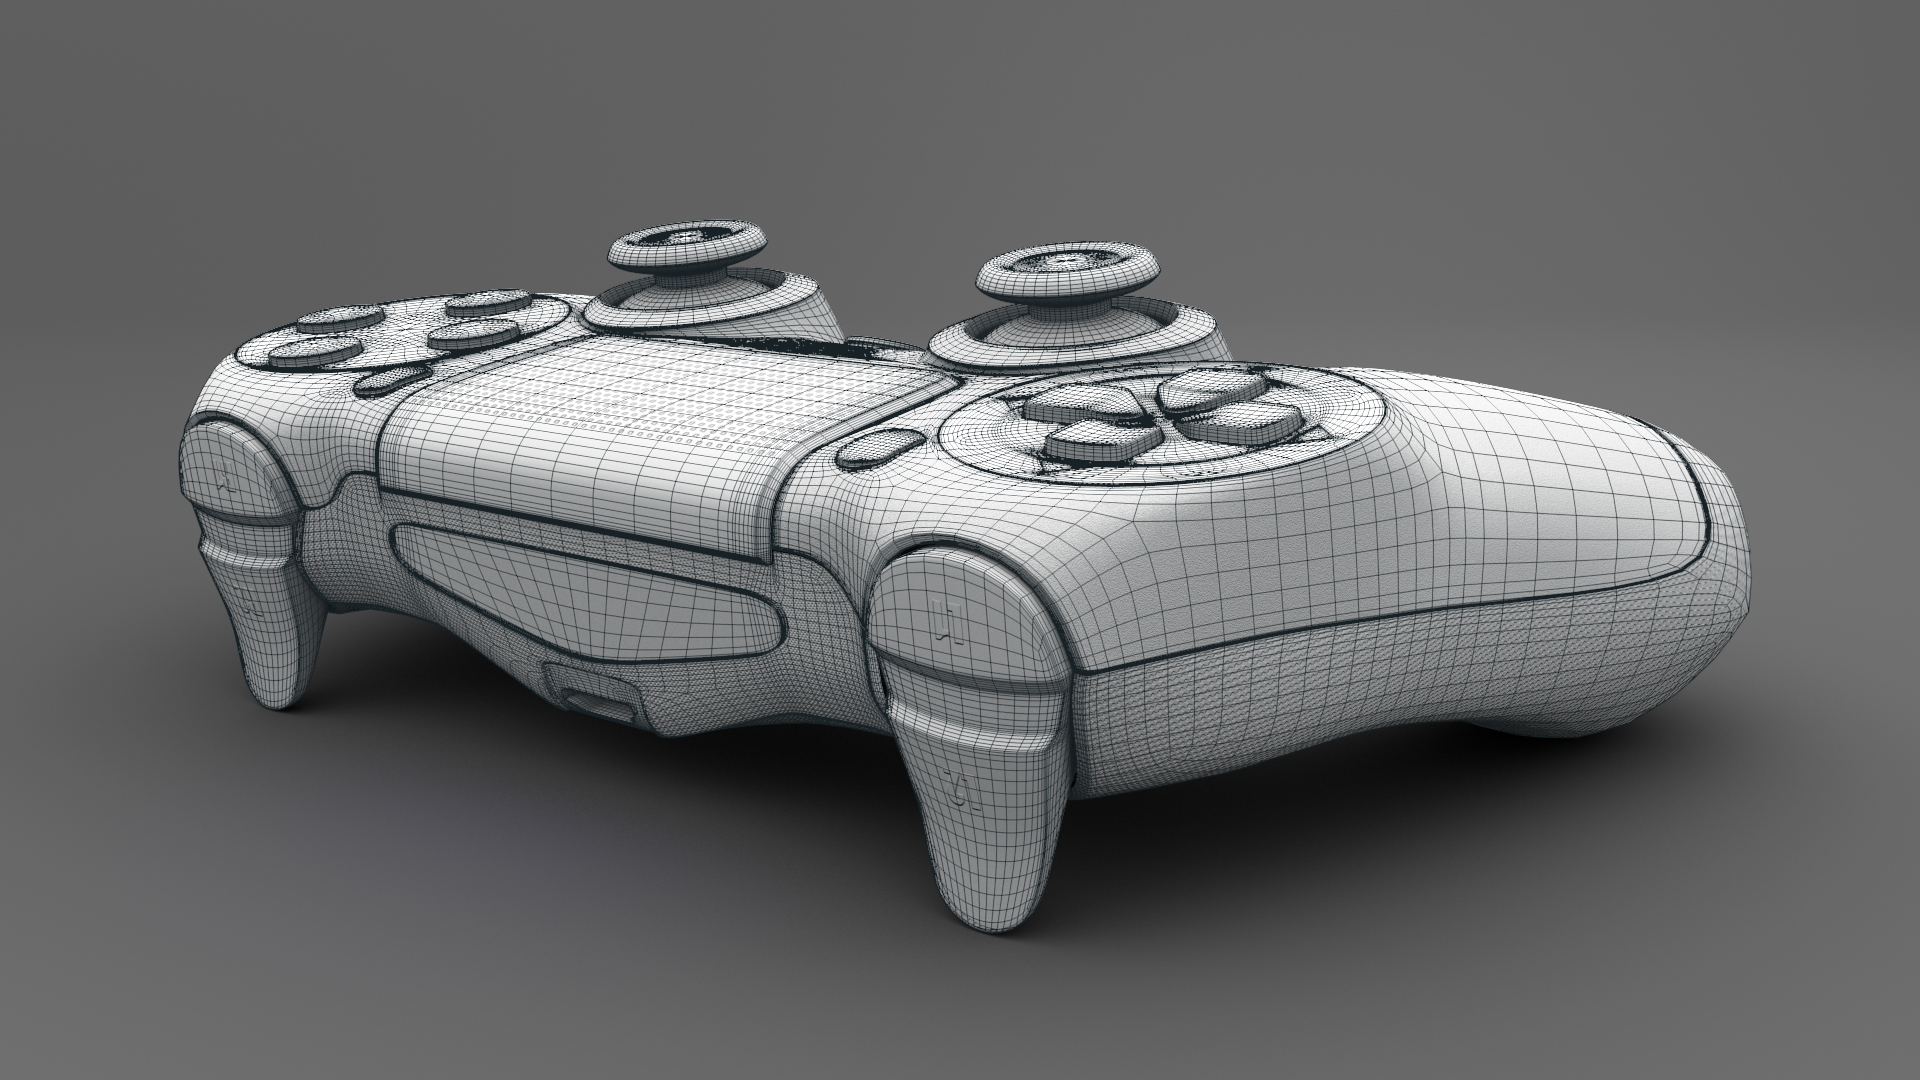 Ps4 controller playstation 4 controller 3d model by for 3d decoration models